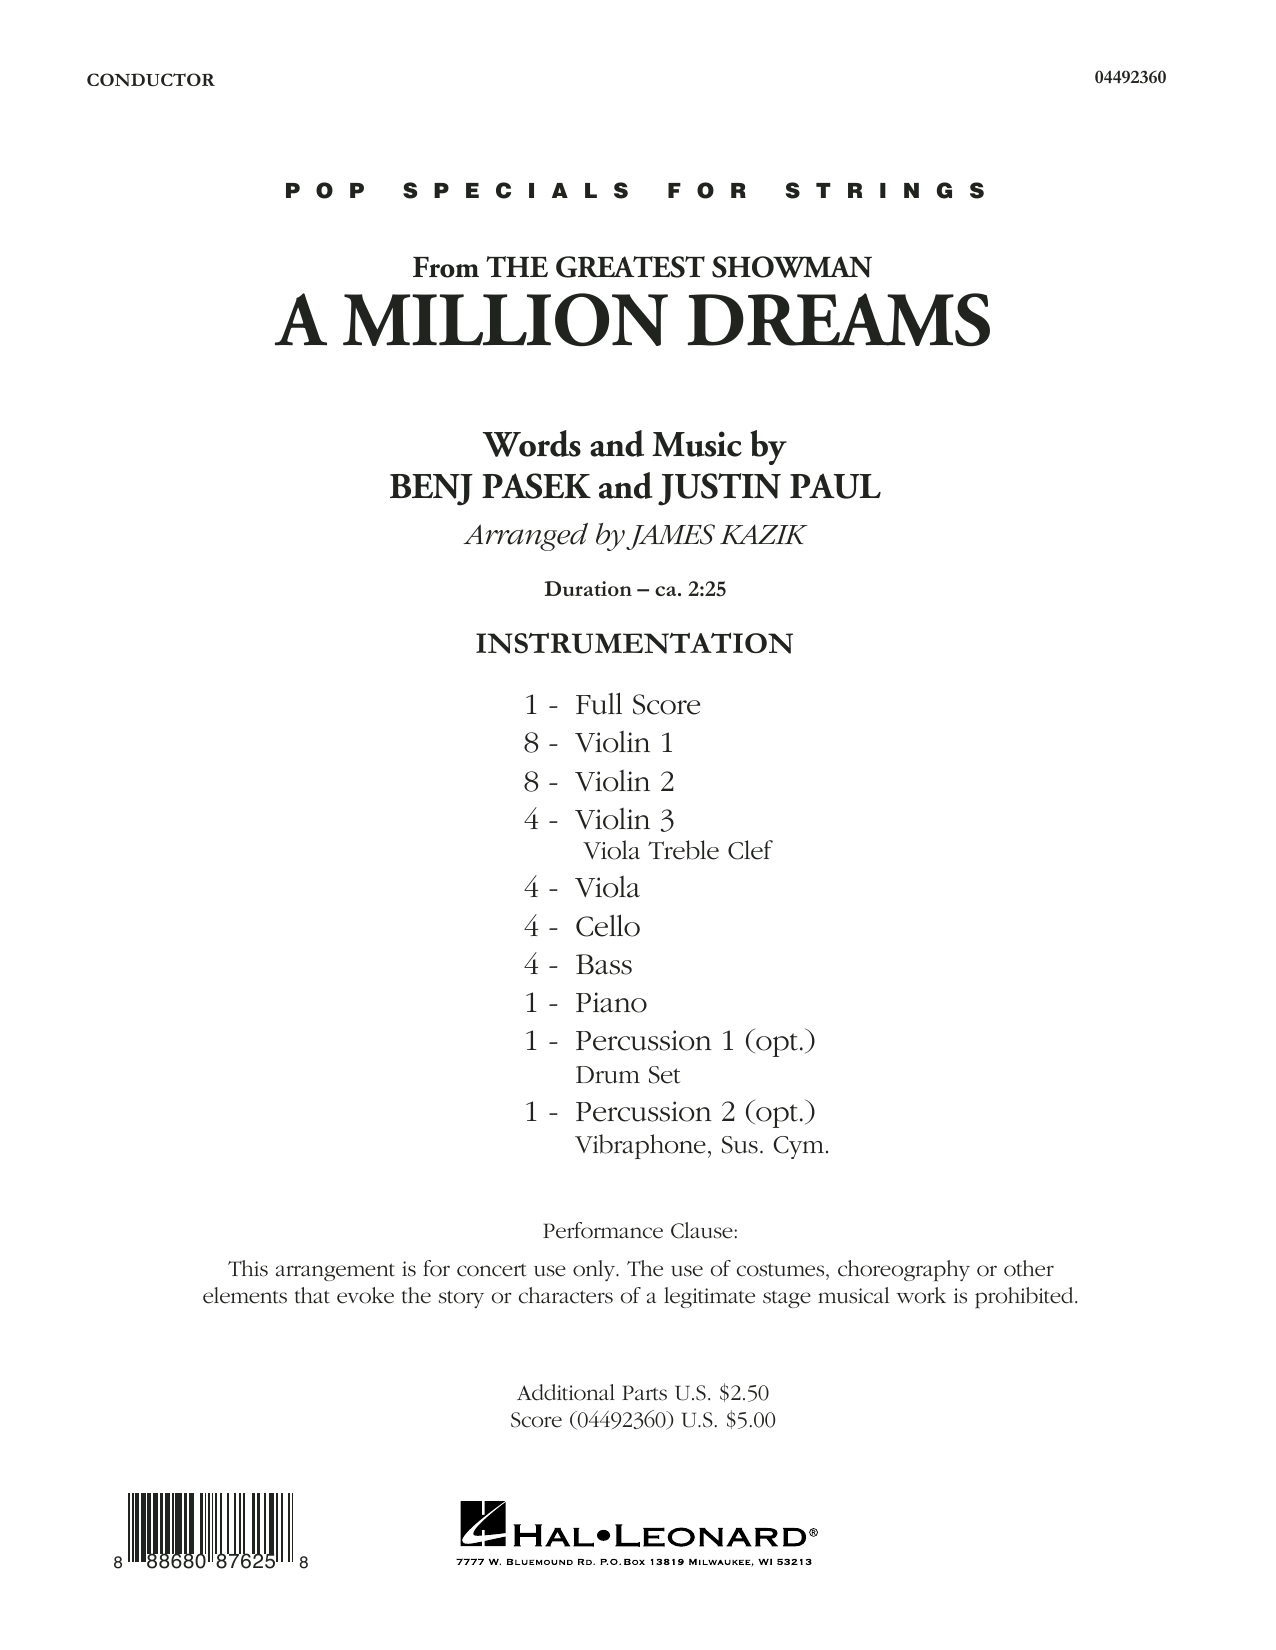 Pasek & Paul A Million Dreams (from The Greatest Showman) (arr. James Kazik) - Conductor Score (Full Score) sheet music preview music notes and score for Orchestra including 7 page(s)